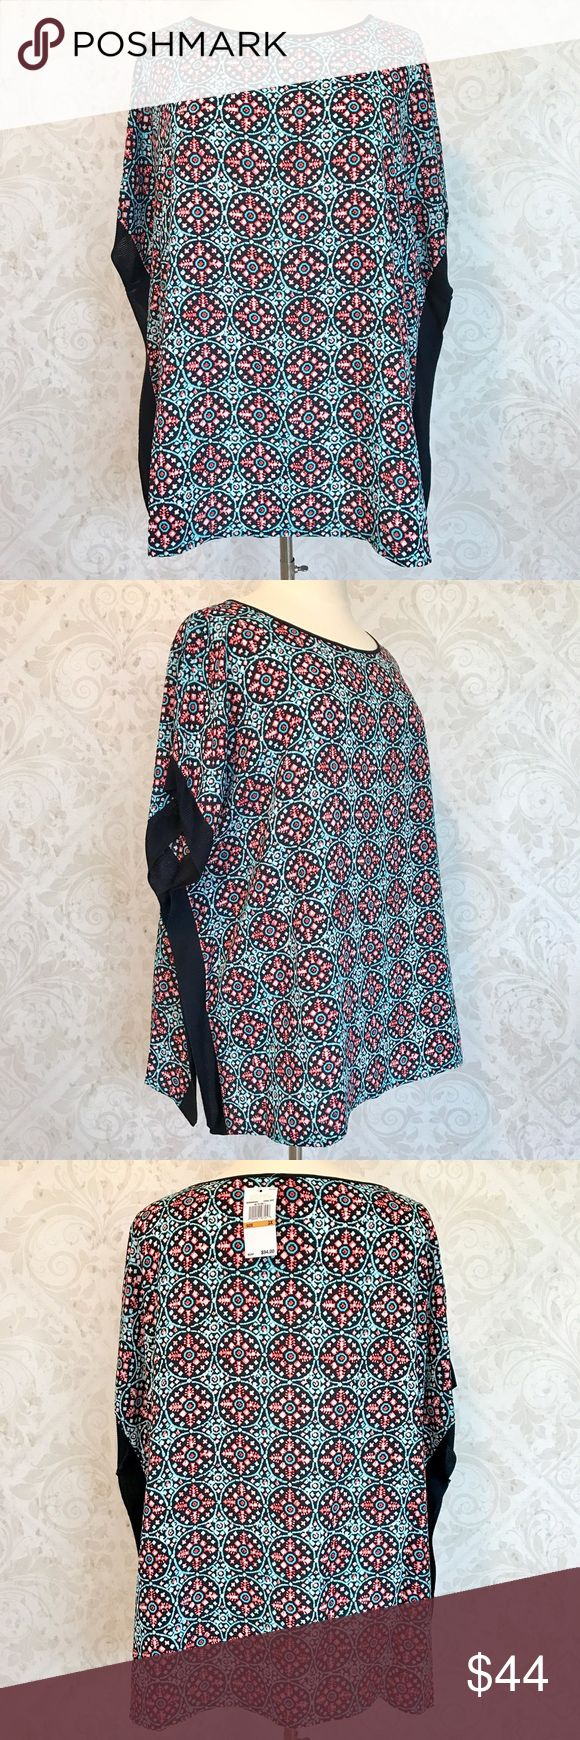 MICHAEL Michael Kors caftan tunic top Chic! Wonderful relaxed-fit caftan. Black, bright aqua, pink, and white poly crepe. No stretch. Ribbed edging at sides. Scoop neck, tunic length. Marked 3X, will work for both 2X and 3X, in my opinion. NWT; never worn. MICHAEL Michael Kors Tops Tunics